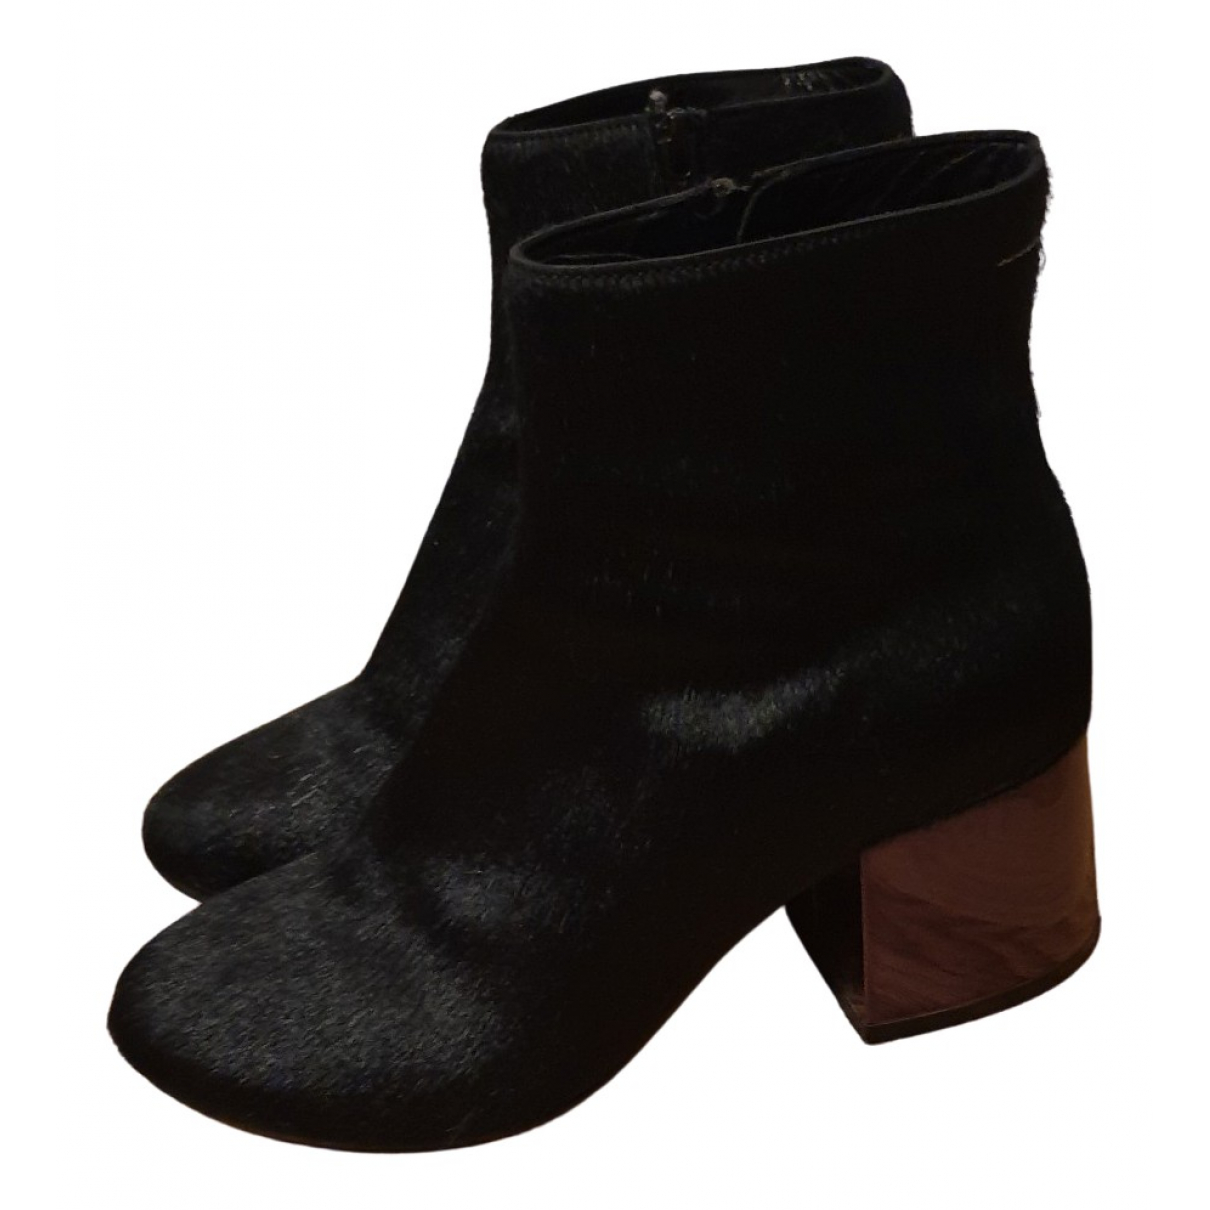 Mm6 N Black Pony-style calfskin Ankle boots for Women 38.5 EU